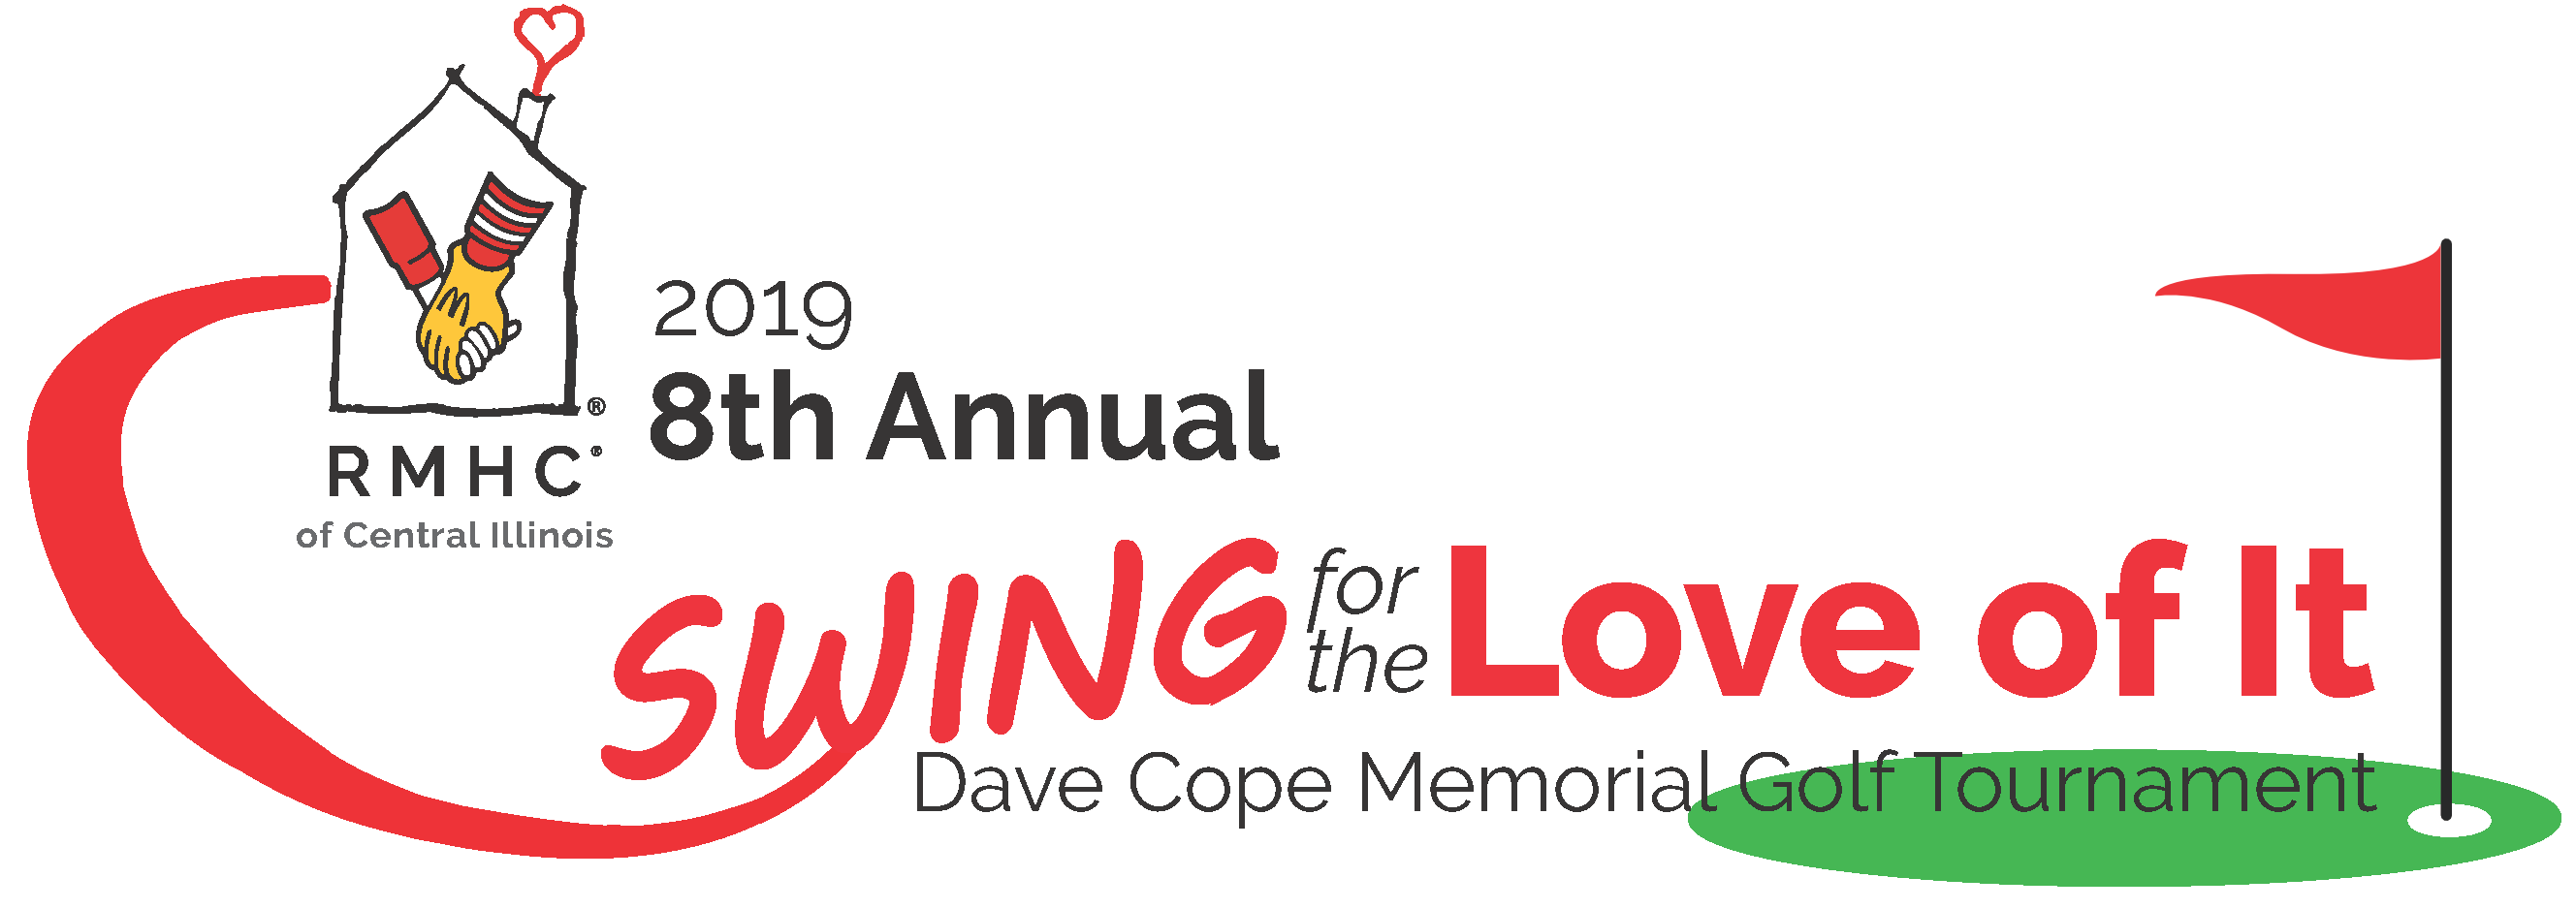 """Join us for the 8th Annual Dave Cope """"Swing for the Love of It"""" Memorial Golf Tournament on Tuesday September 10, 2019!"""